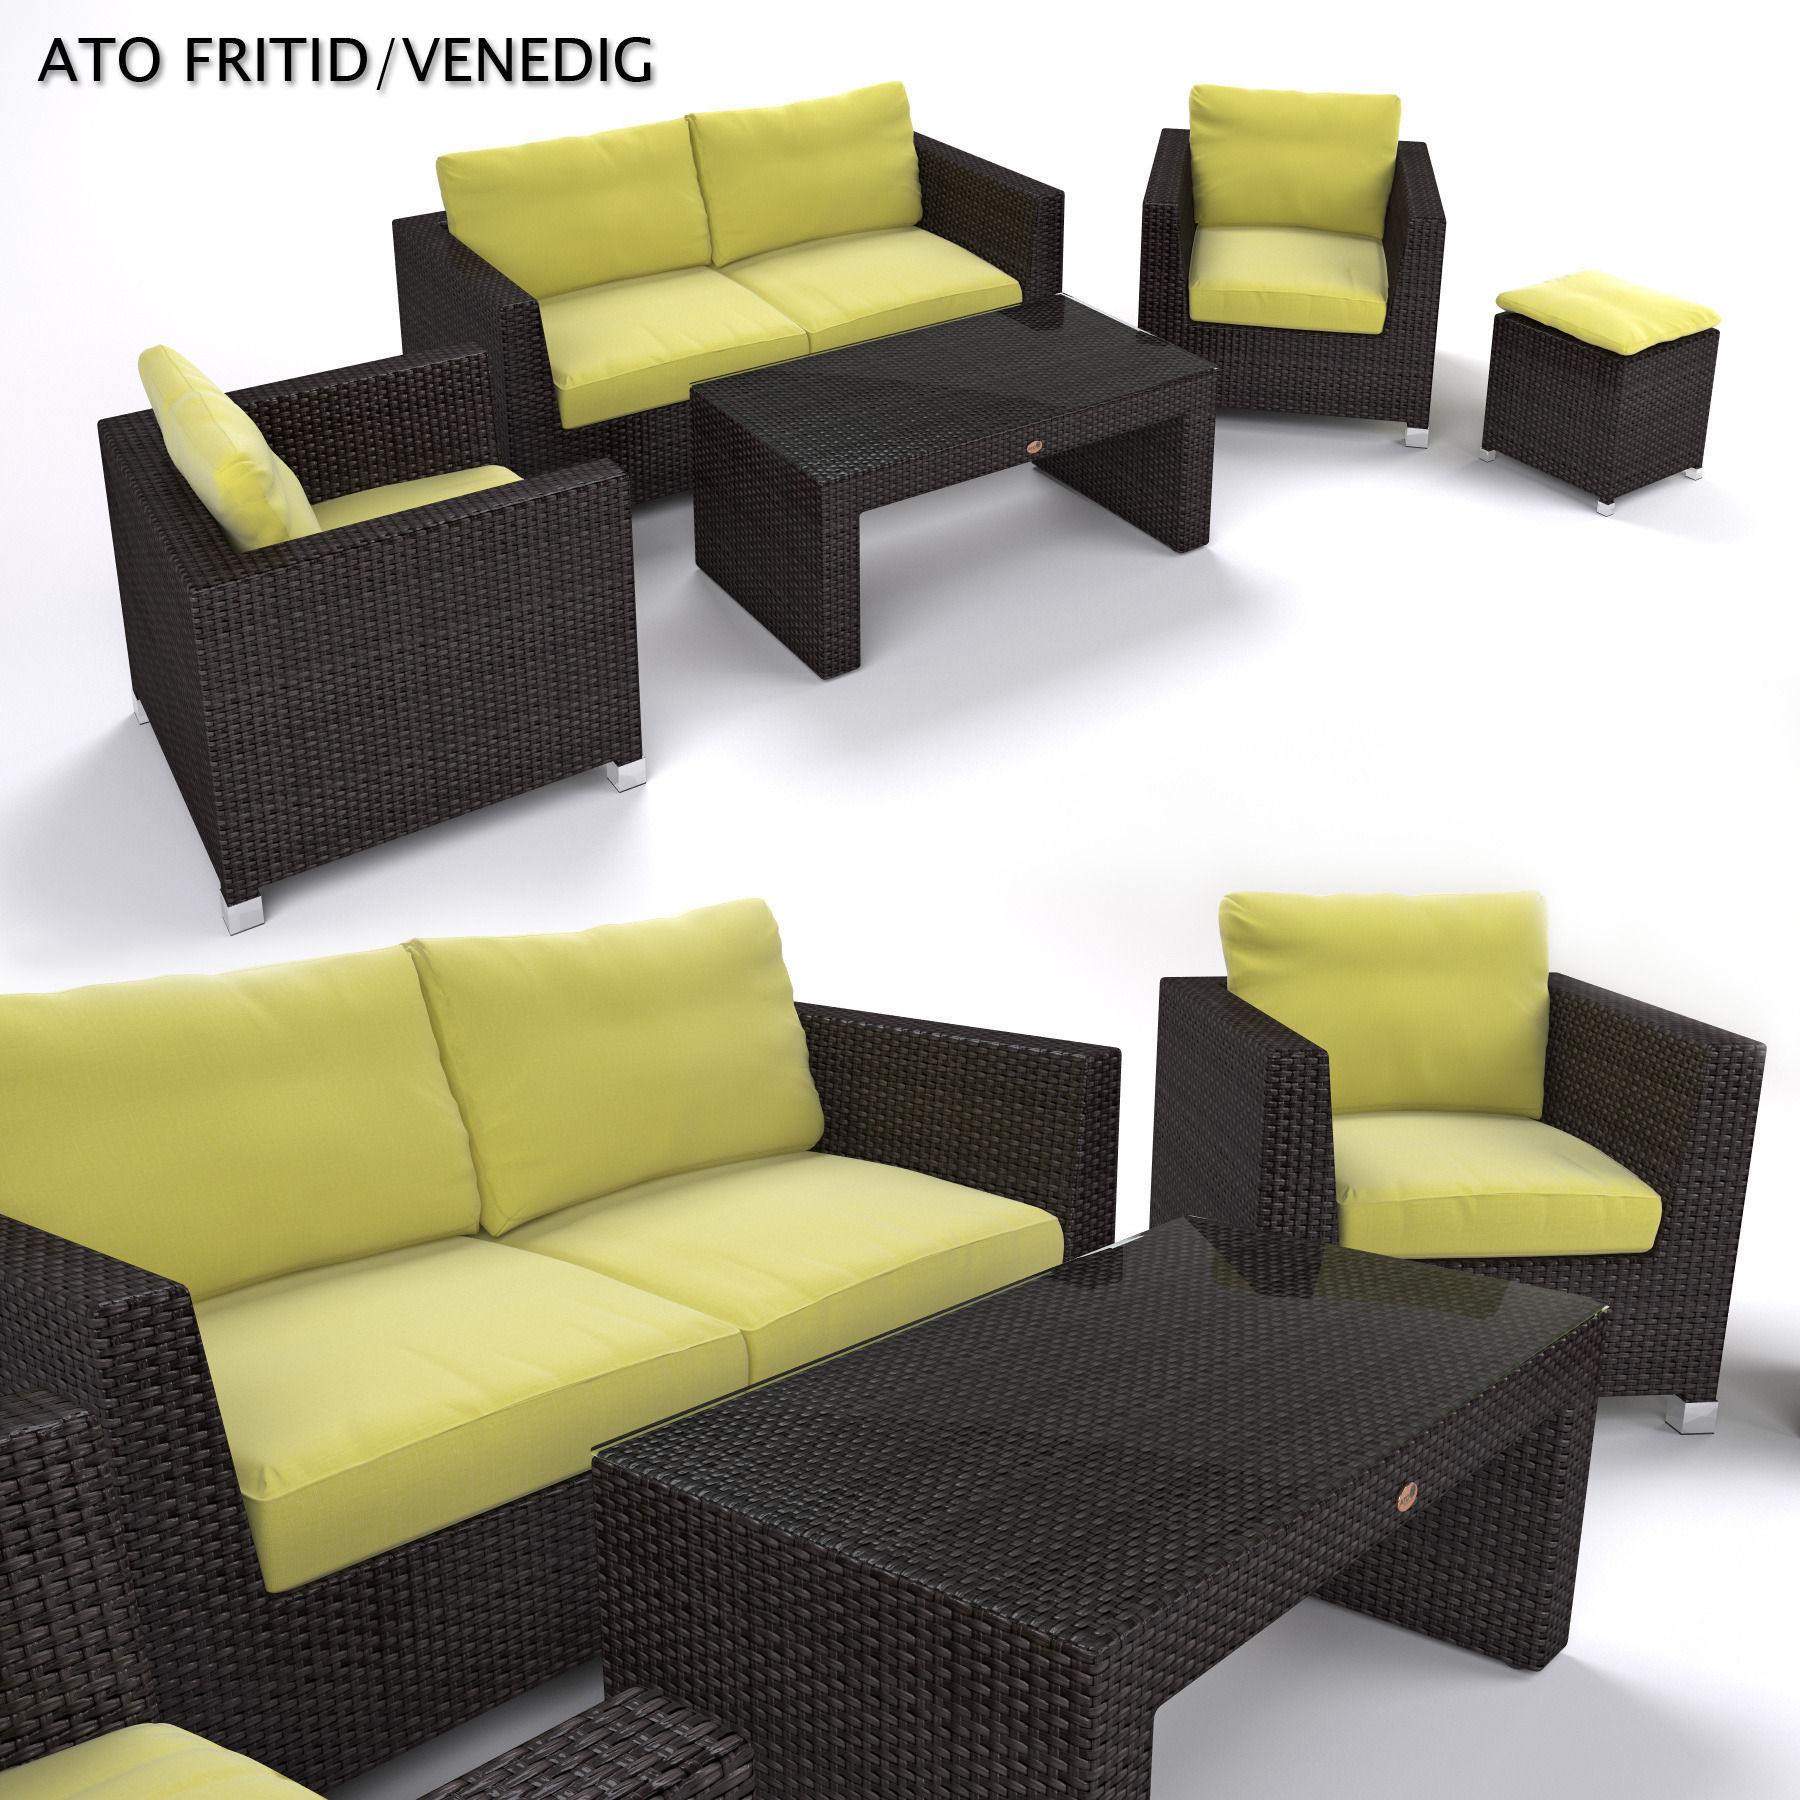 garden furniture synthetic rattan set ato venedig 3d model max obj fbx mtl. Black Bedroom Furniture Sets. Home Design Ideas